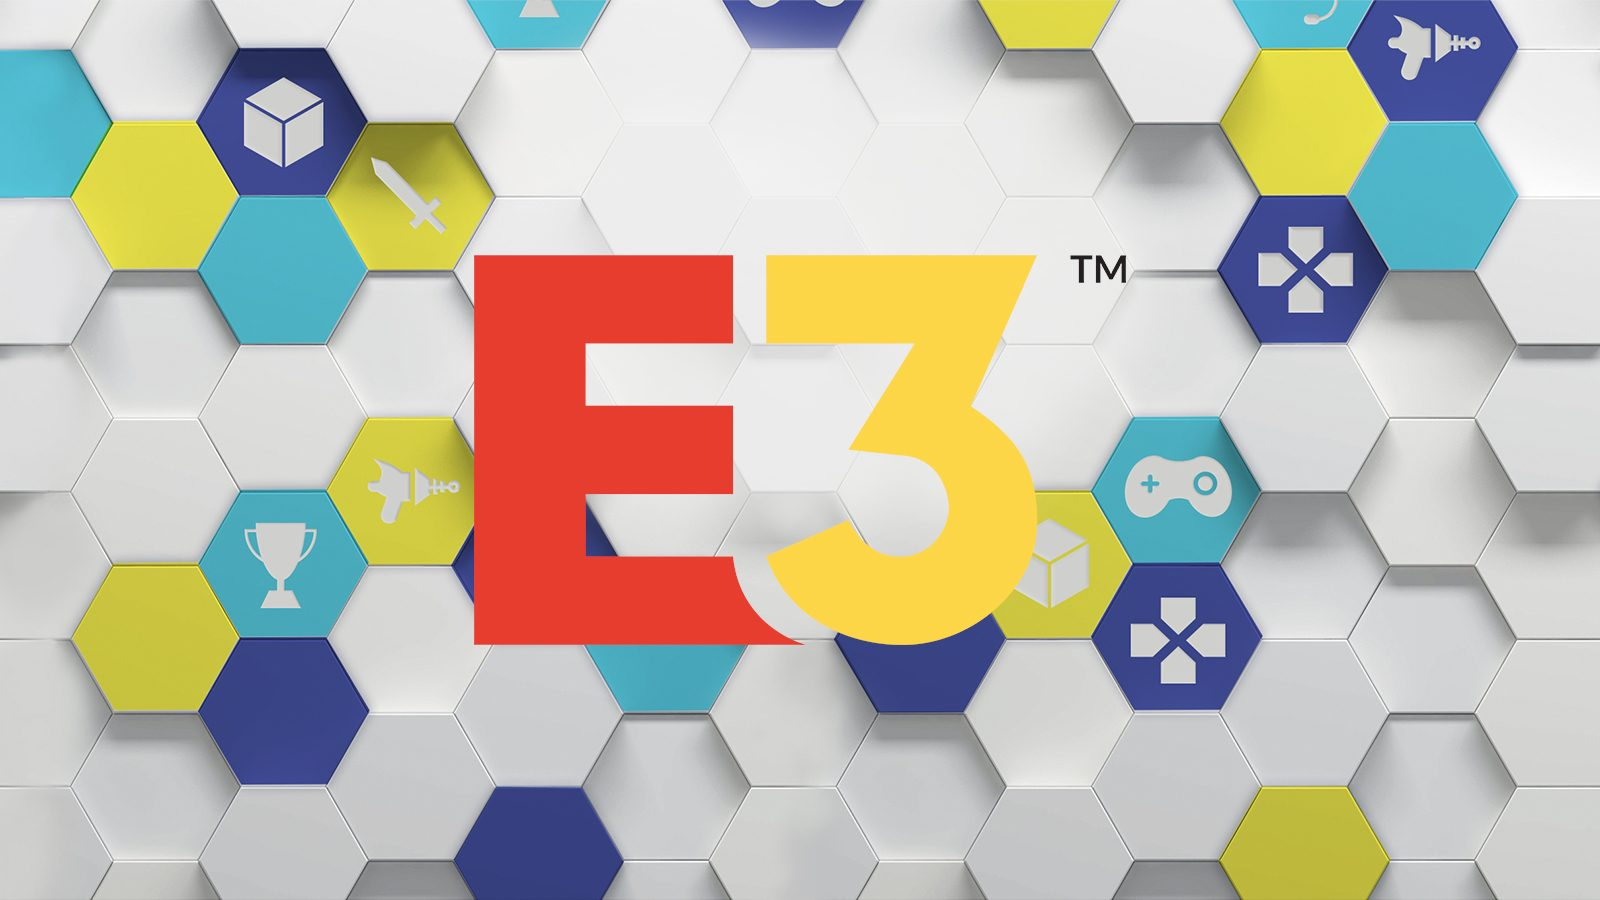 The Top 10 Most Exciting Games Showcased at E3 2018